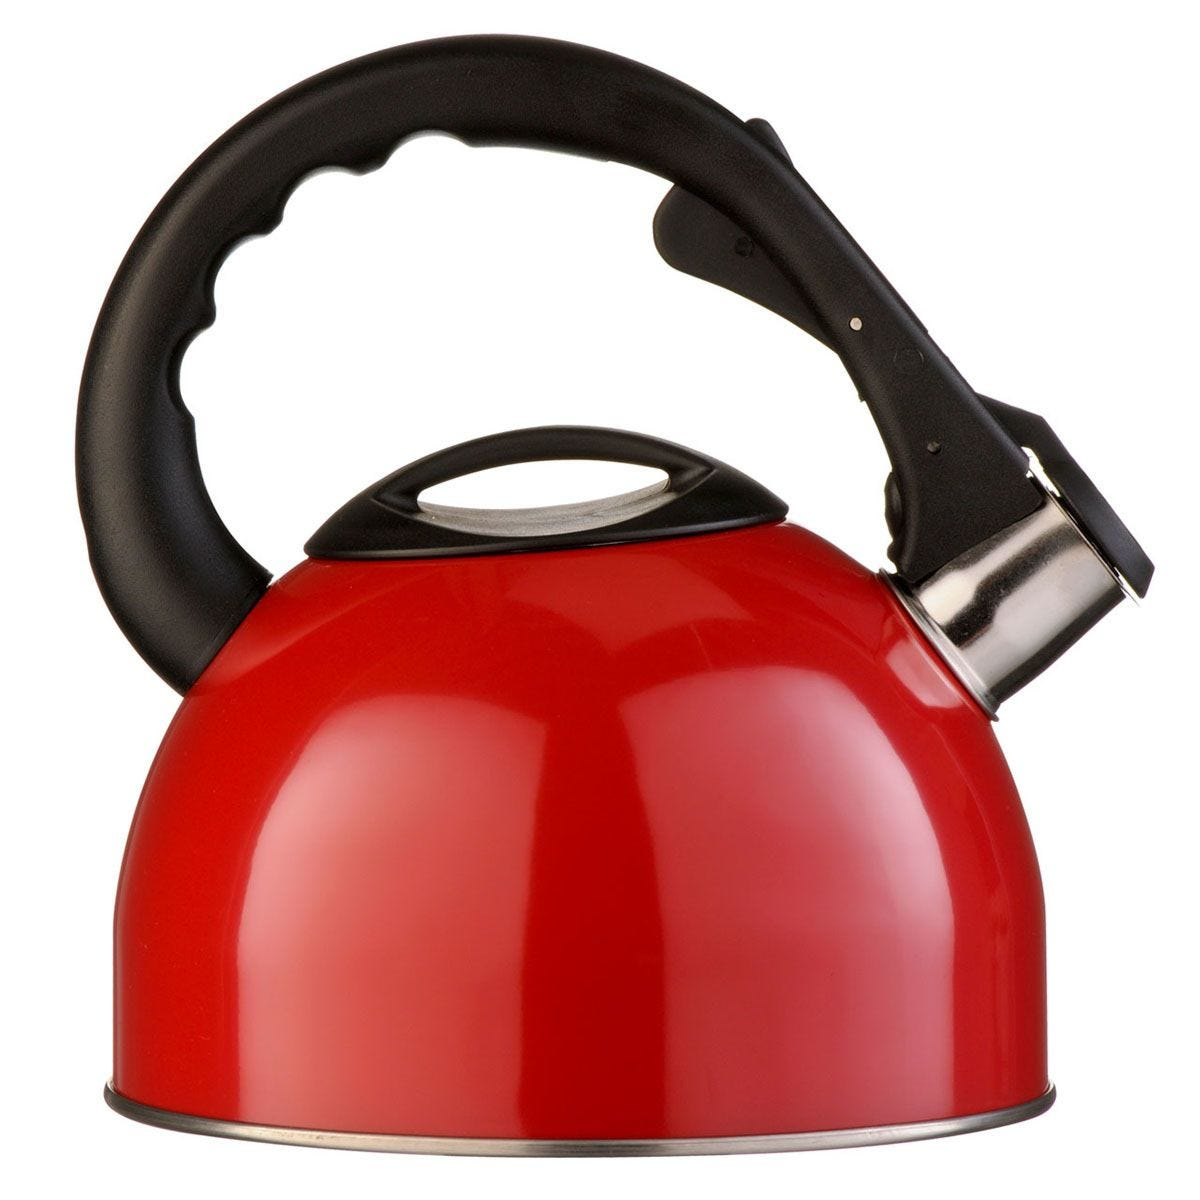 Premier Housewares 2.5L Stainless Steel Whistling Kettle - Red